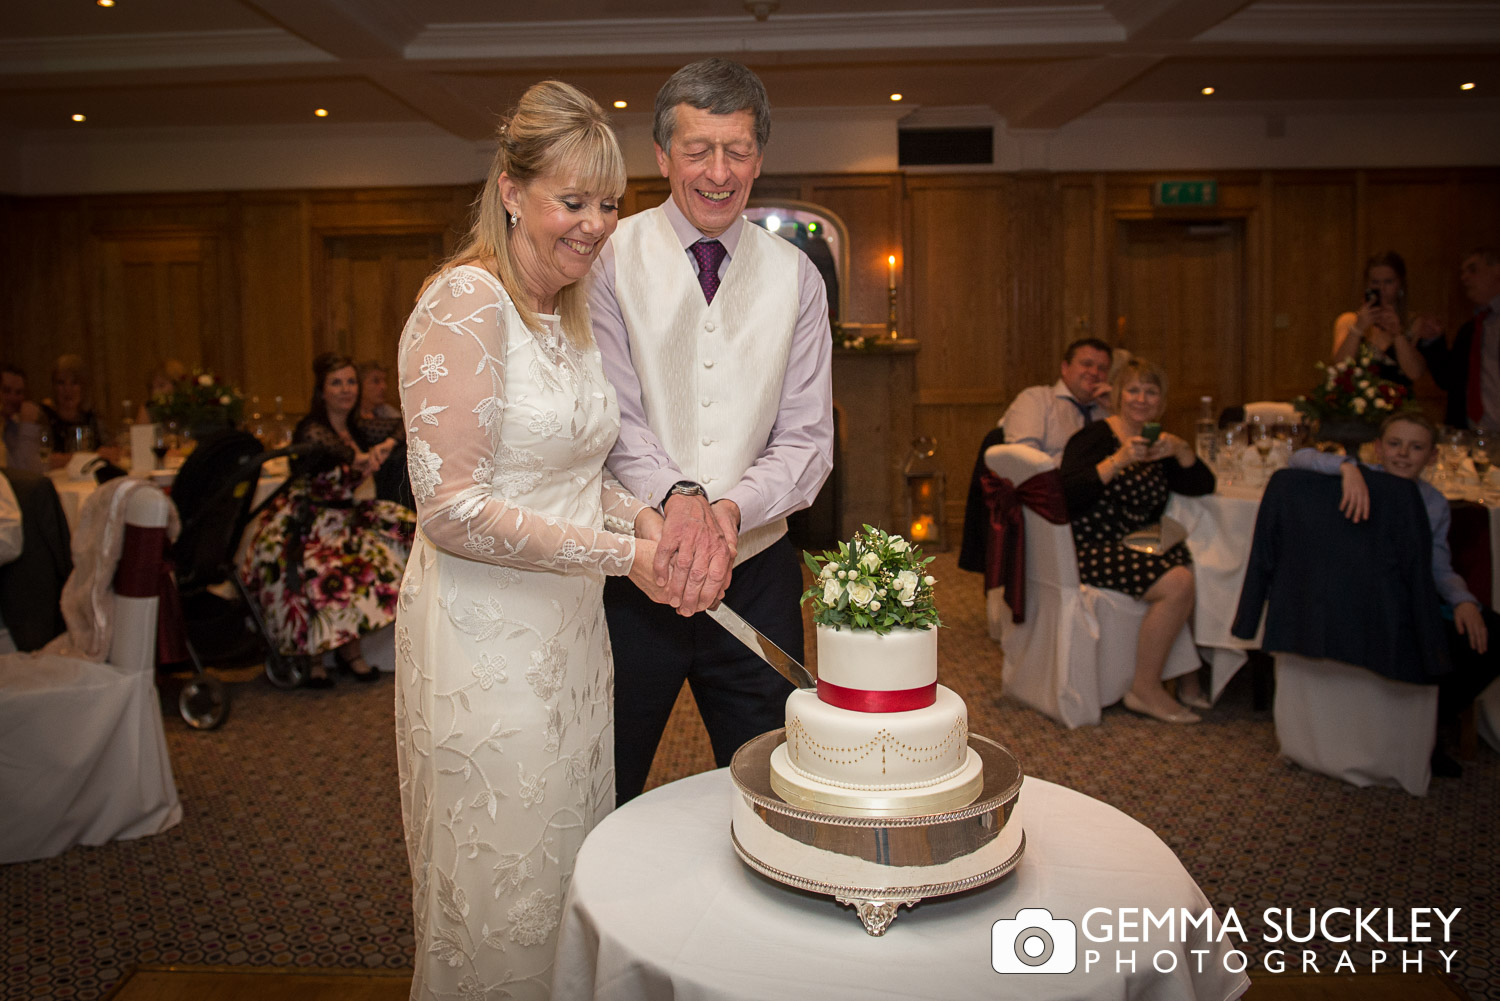 bride and groom cutting the cake wedding cake at Devonshire Arms